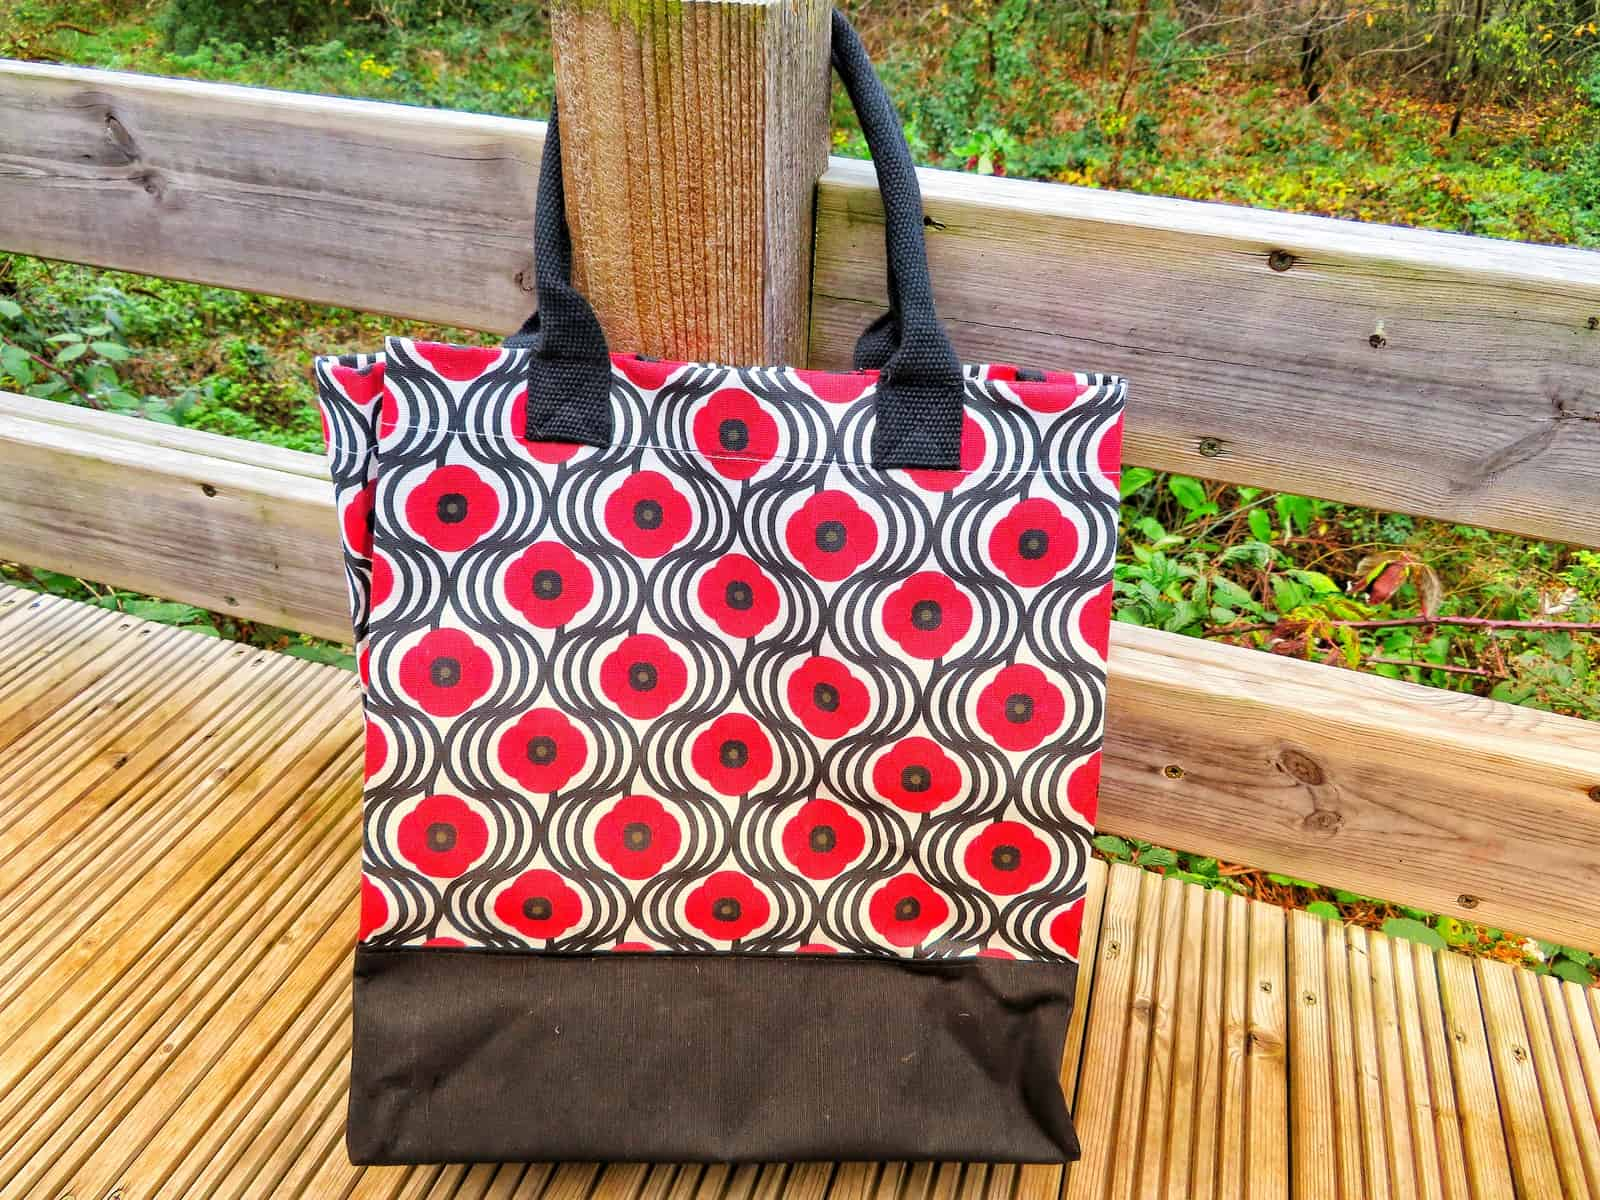 Designer tote bag with poppies on